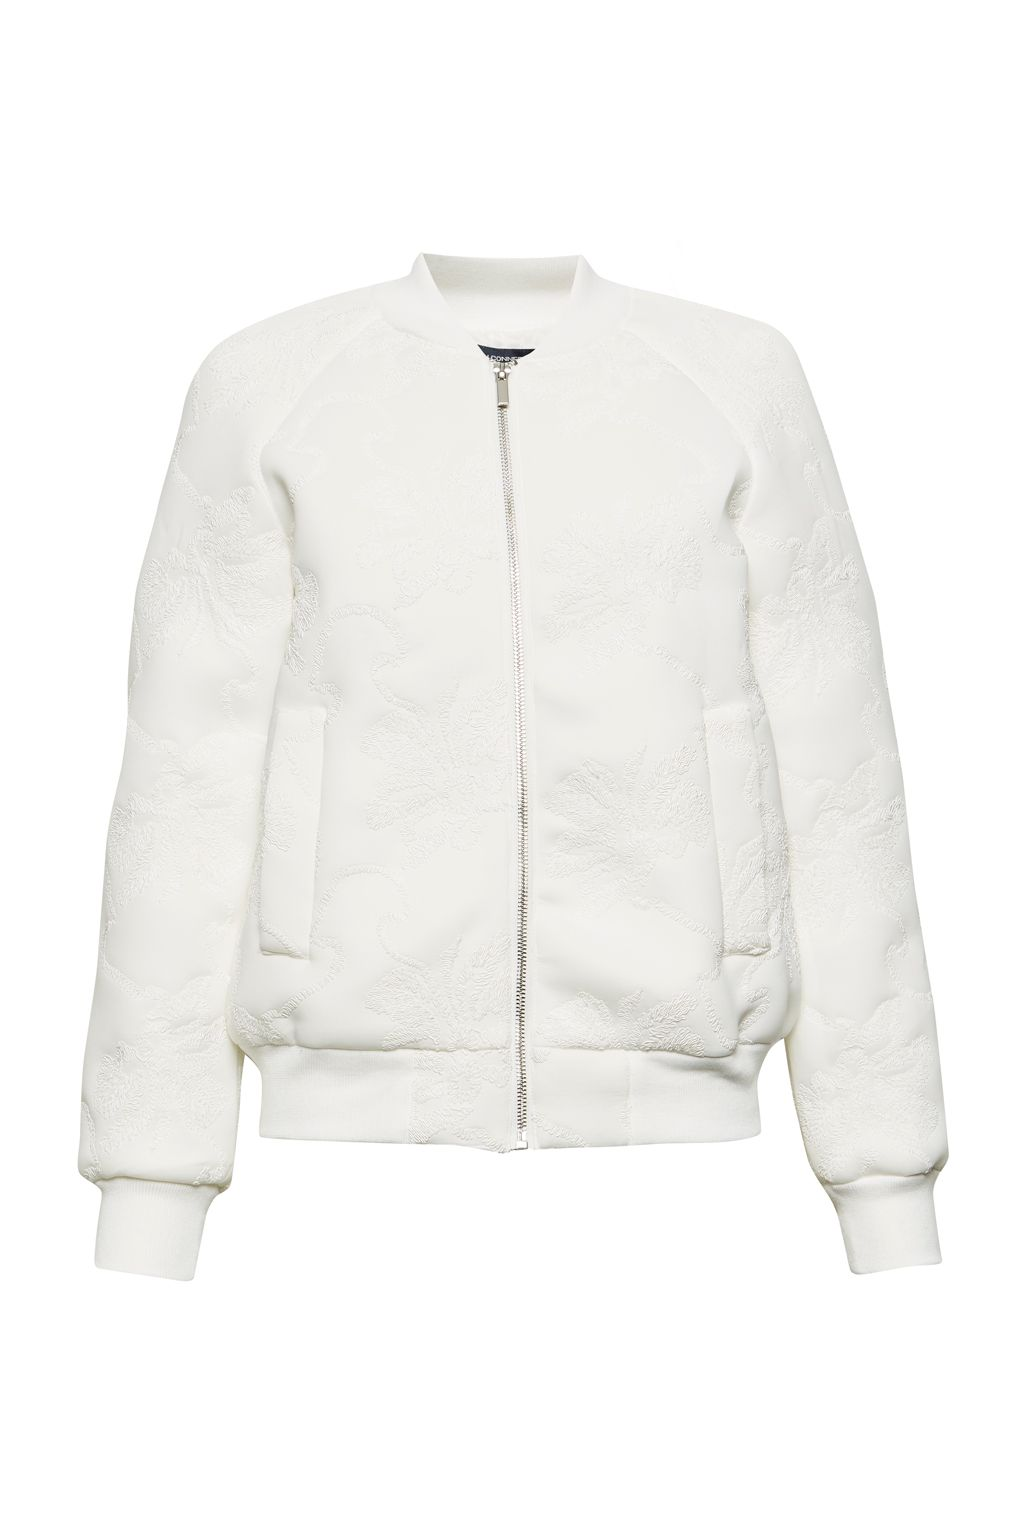 French Connection Hofmann Stitch Bomber Jacket, White